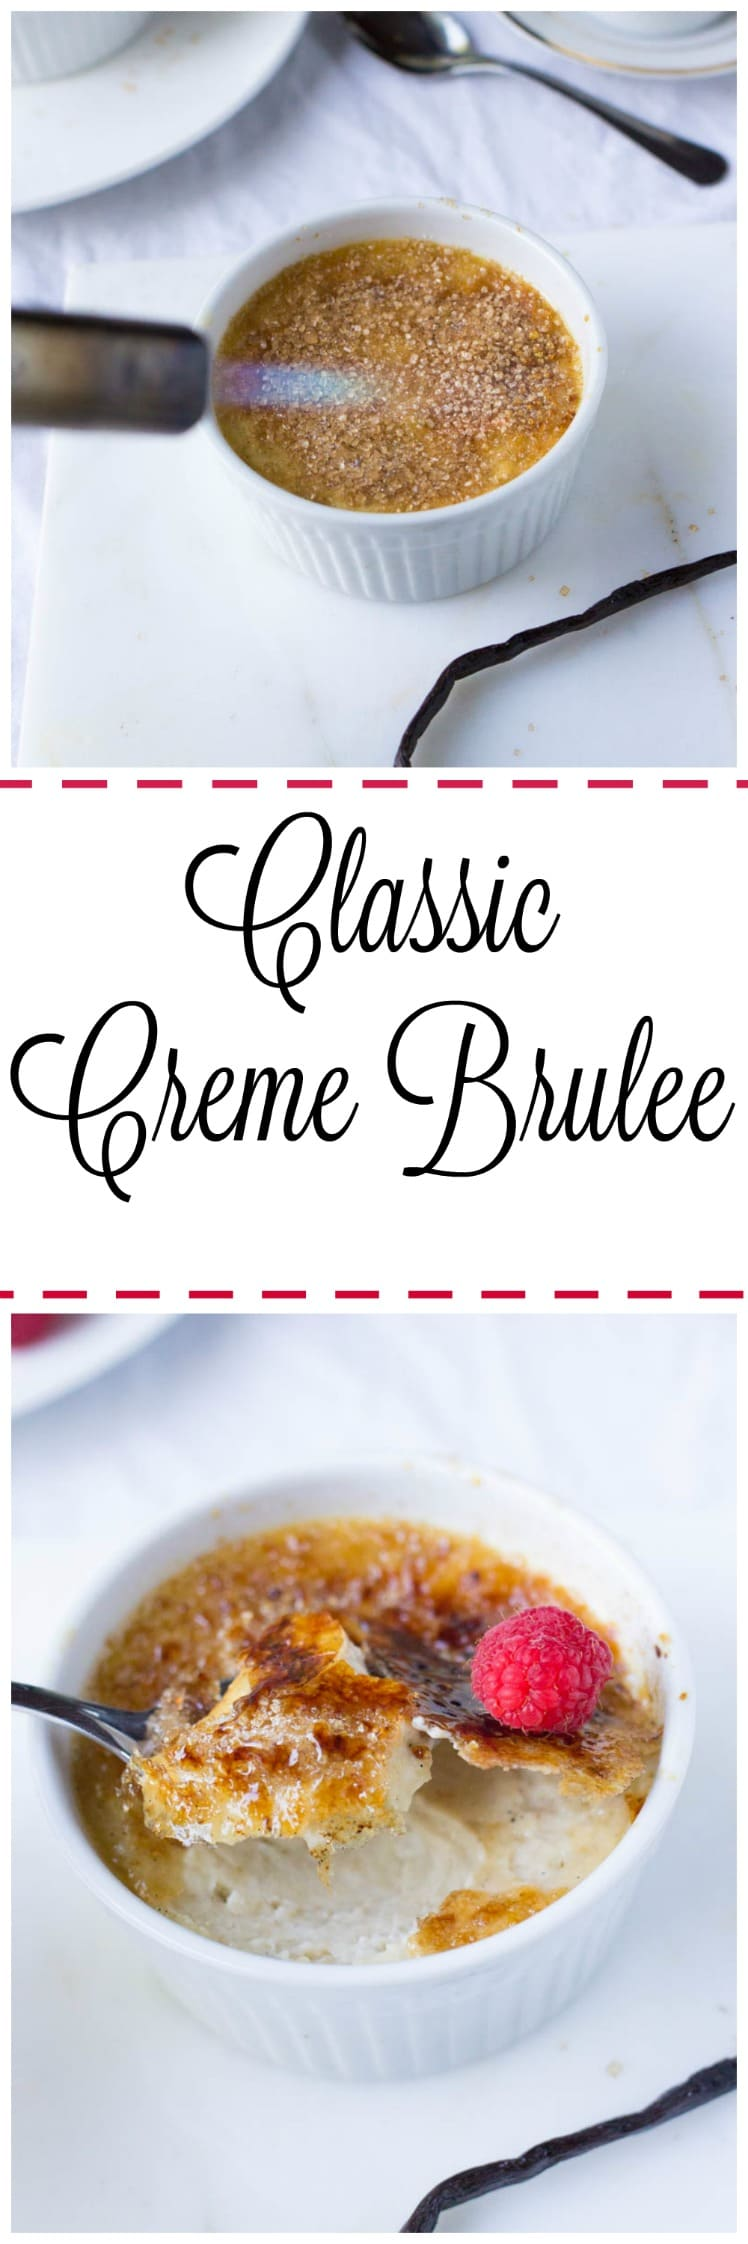 A classic creme brûlée is the perfect dessert for ANY occasion. The creamy custard inside pairs beautifully with the crispy caramel outside. Plus it naturally comes with the best party trick around: torching. Prepare to blow away all your guests with this delicious and simple classic French dessert!